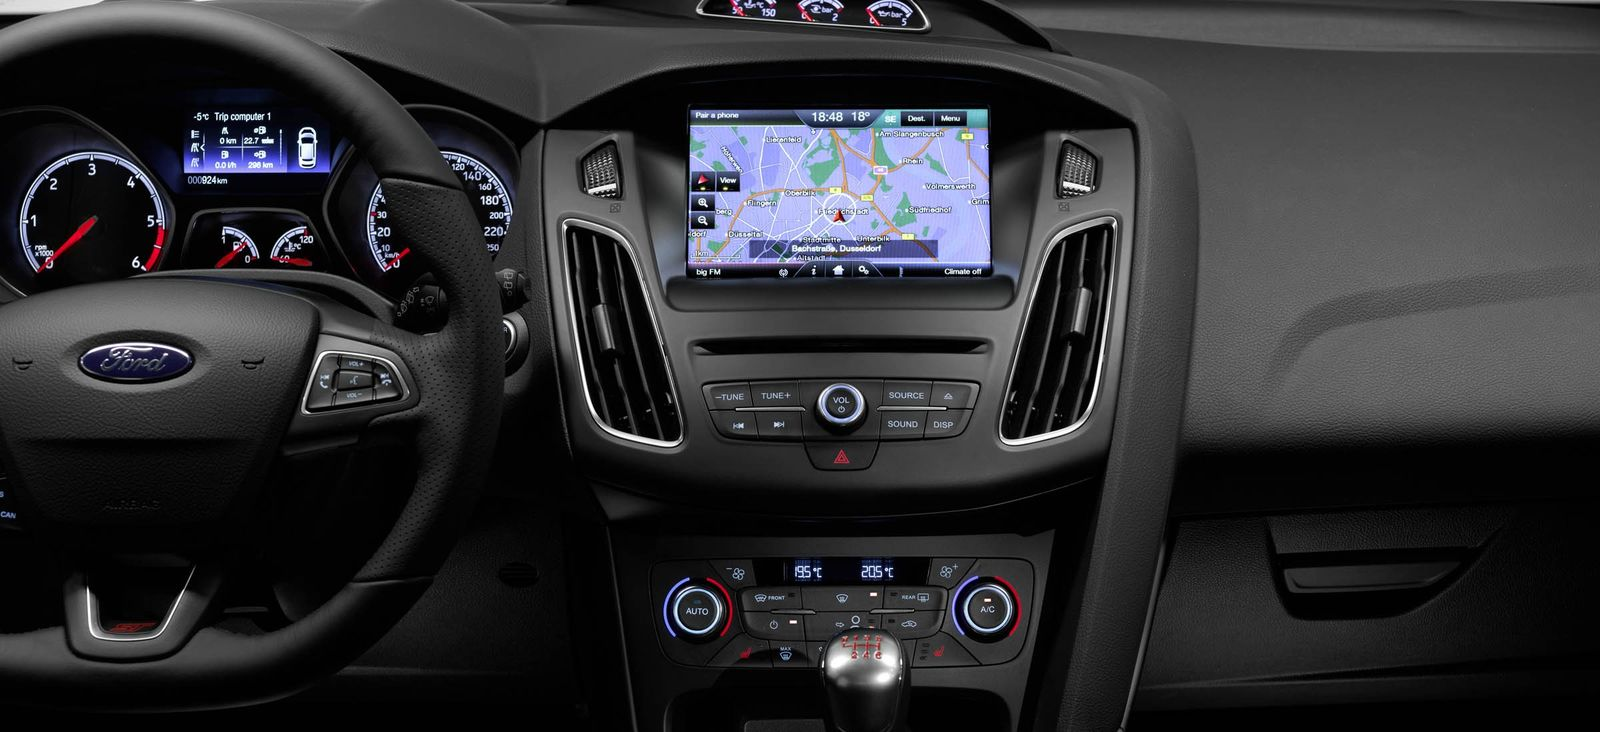 Ford Focus ST-2 dashboard and infotainment system